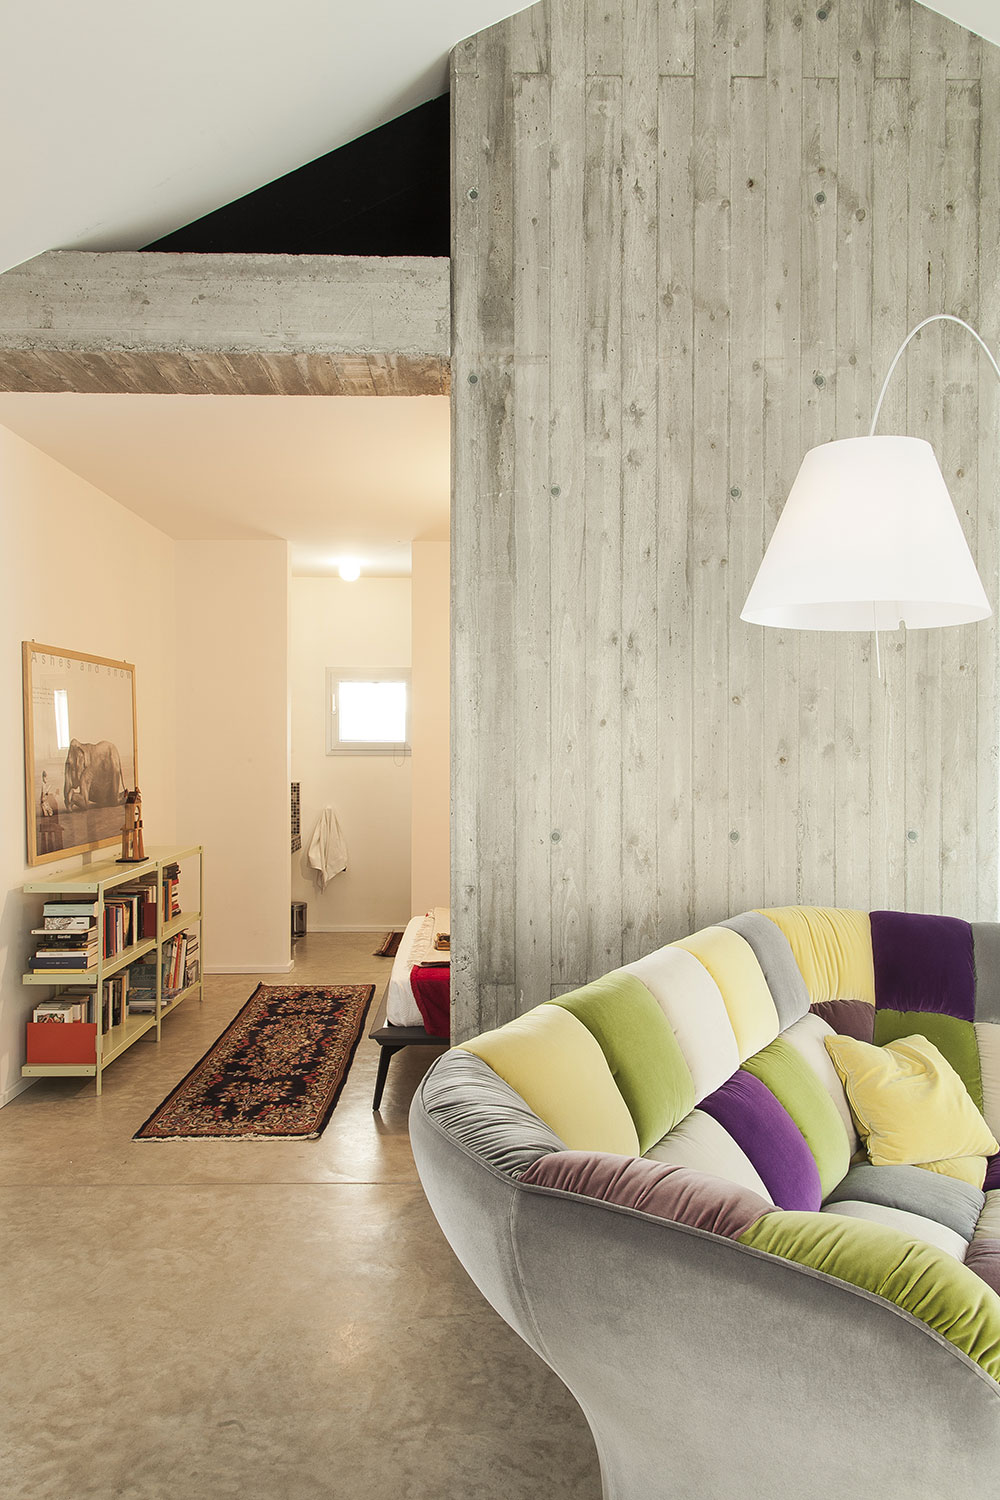 Casa Merla - ENVIRONMENTS, Nestled among the bell towers of many ...